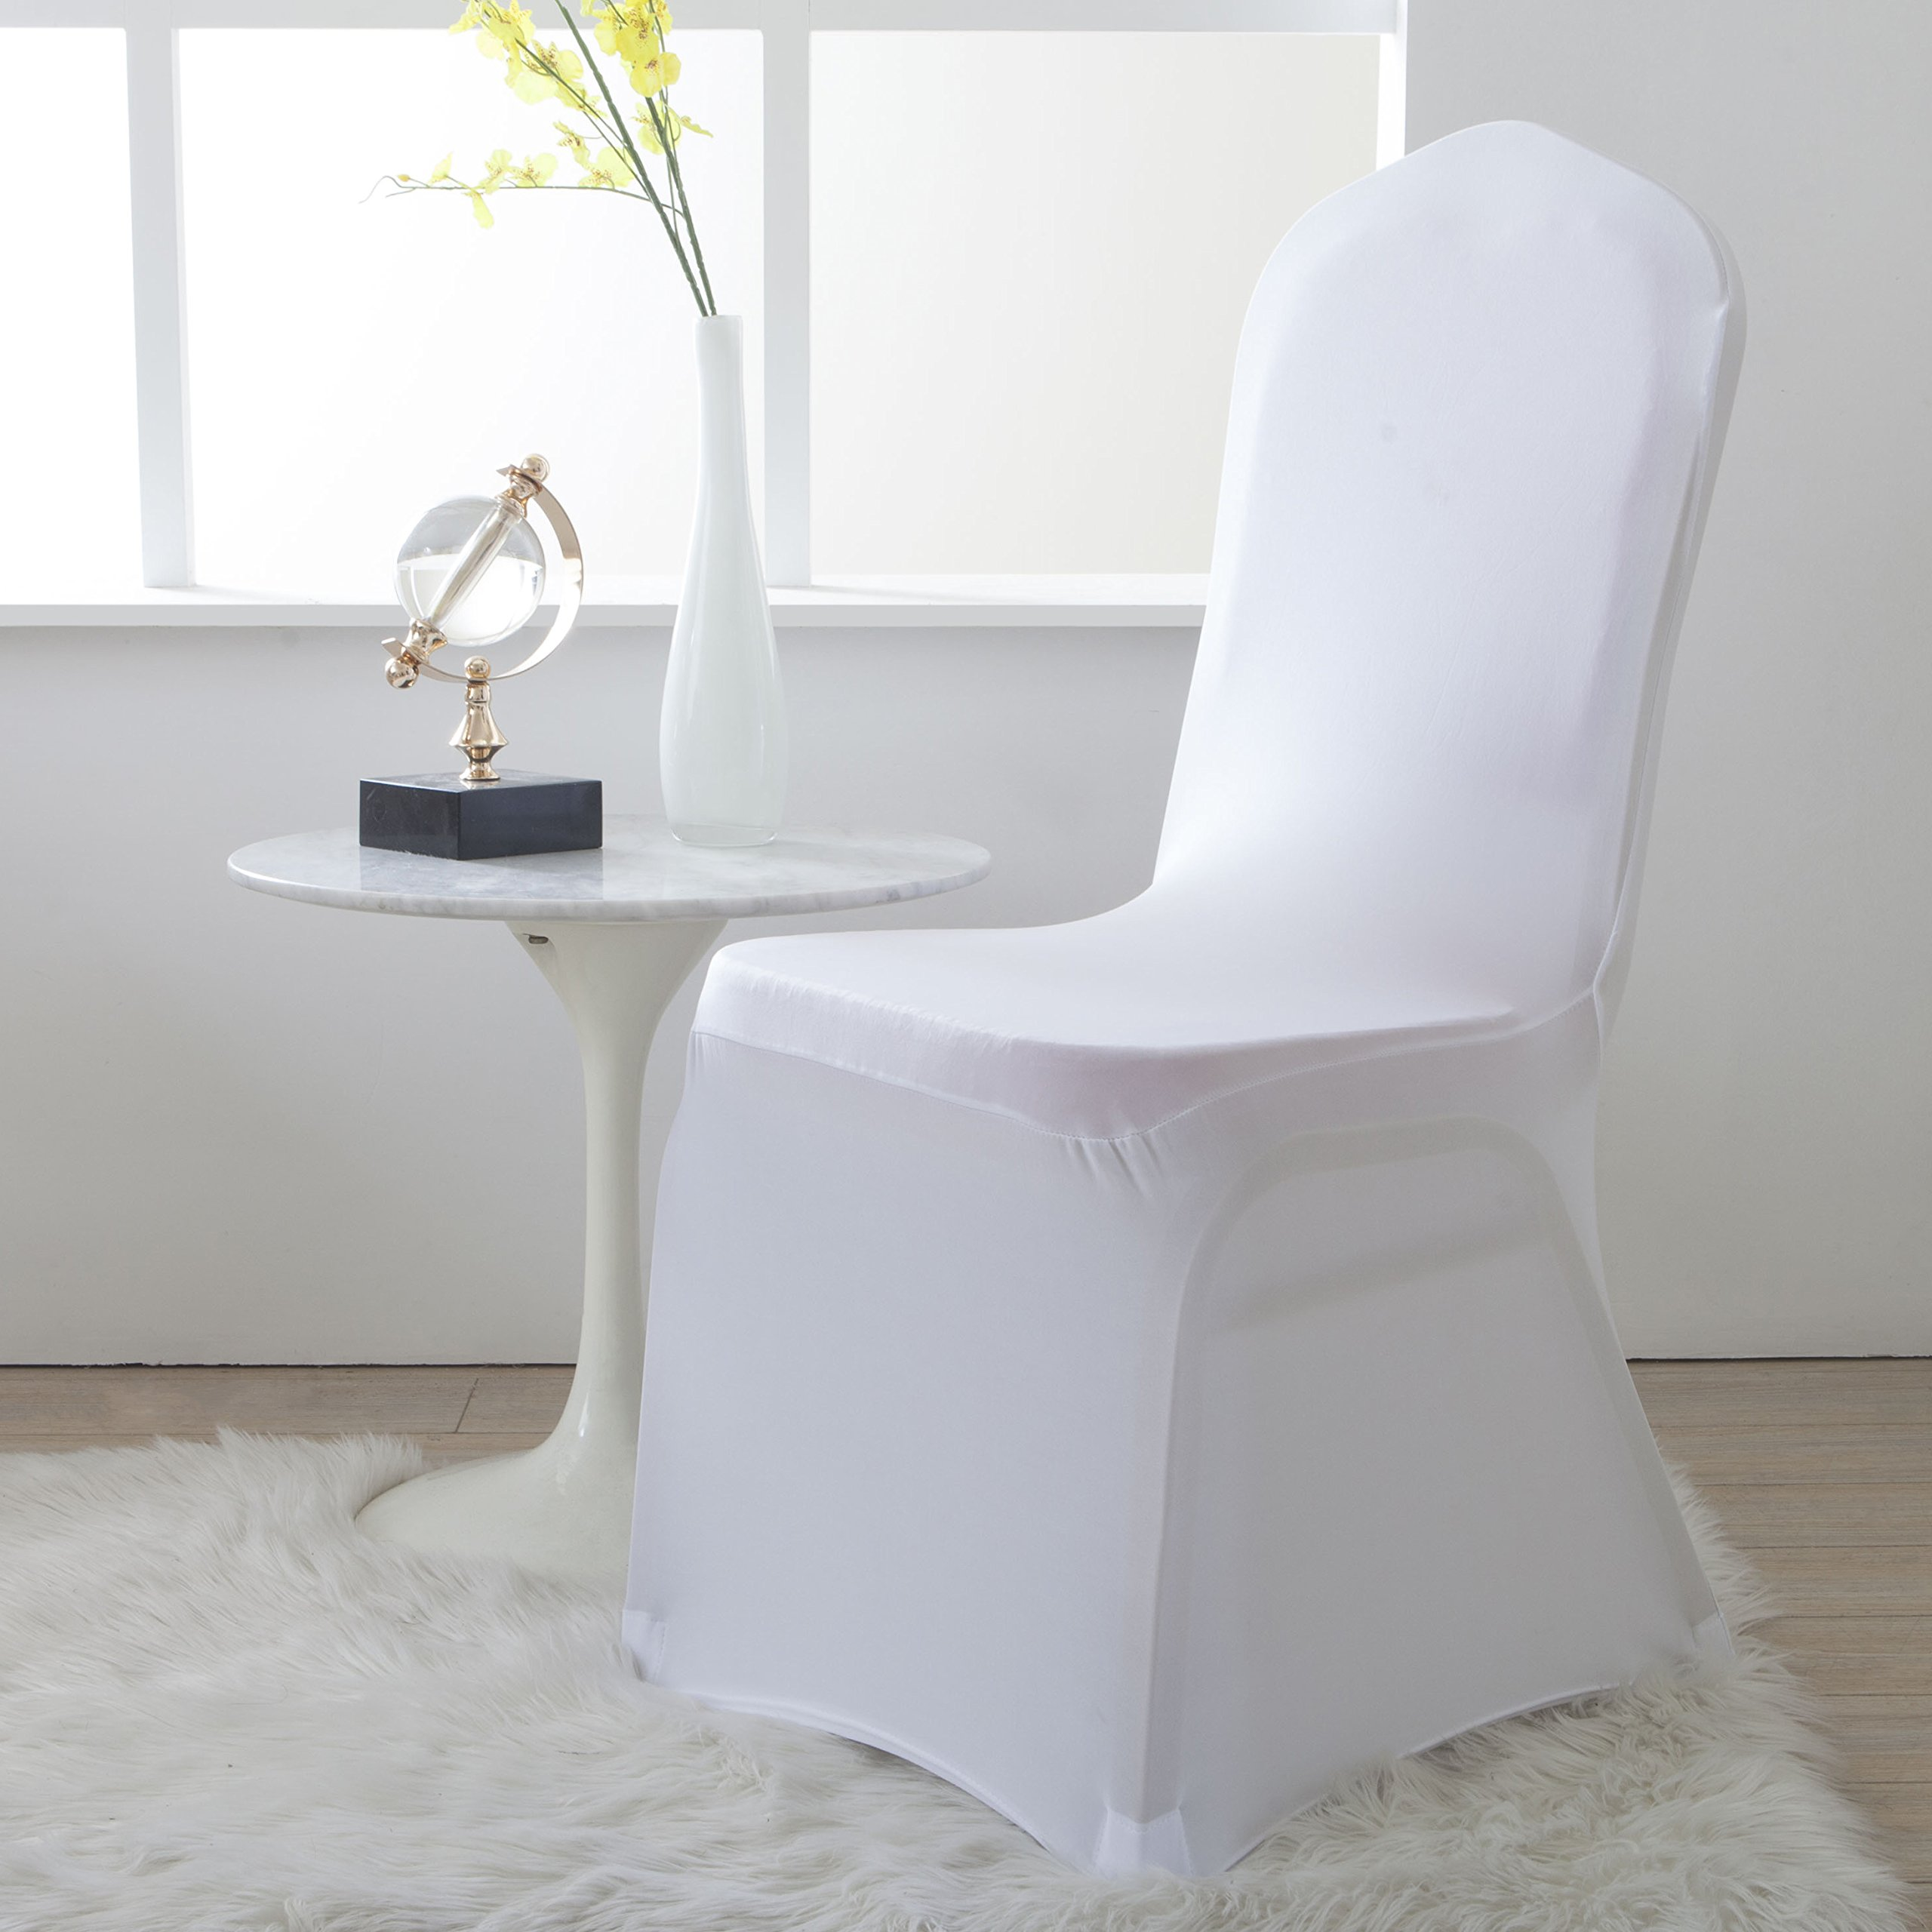 Lewing Set of 4pcs Spandex Fitted Stretchable Chair Covers for Folding Chairs White